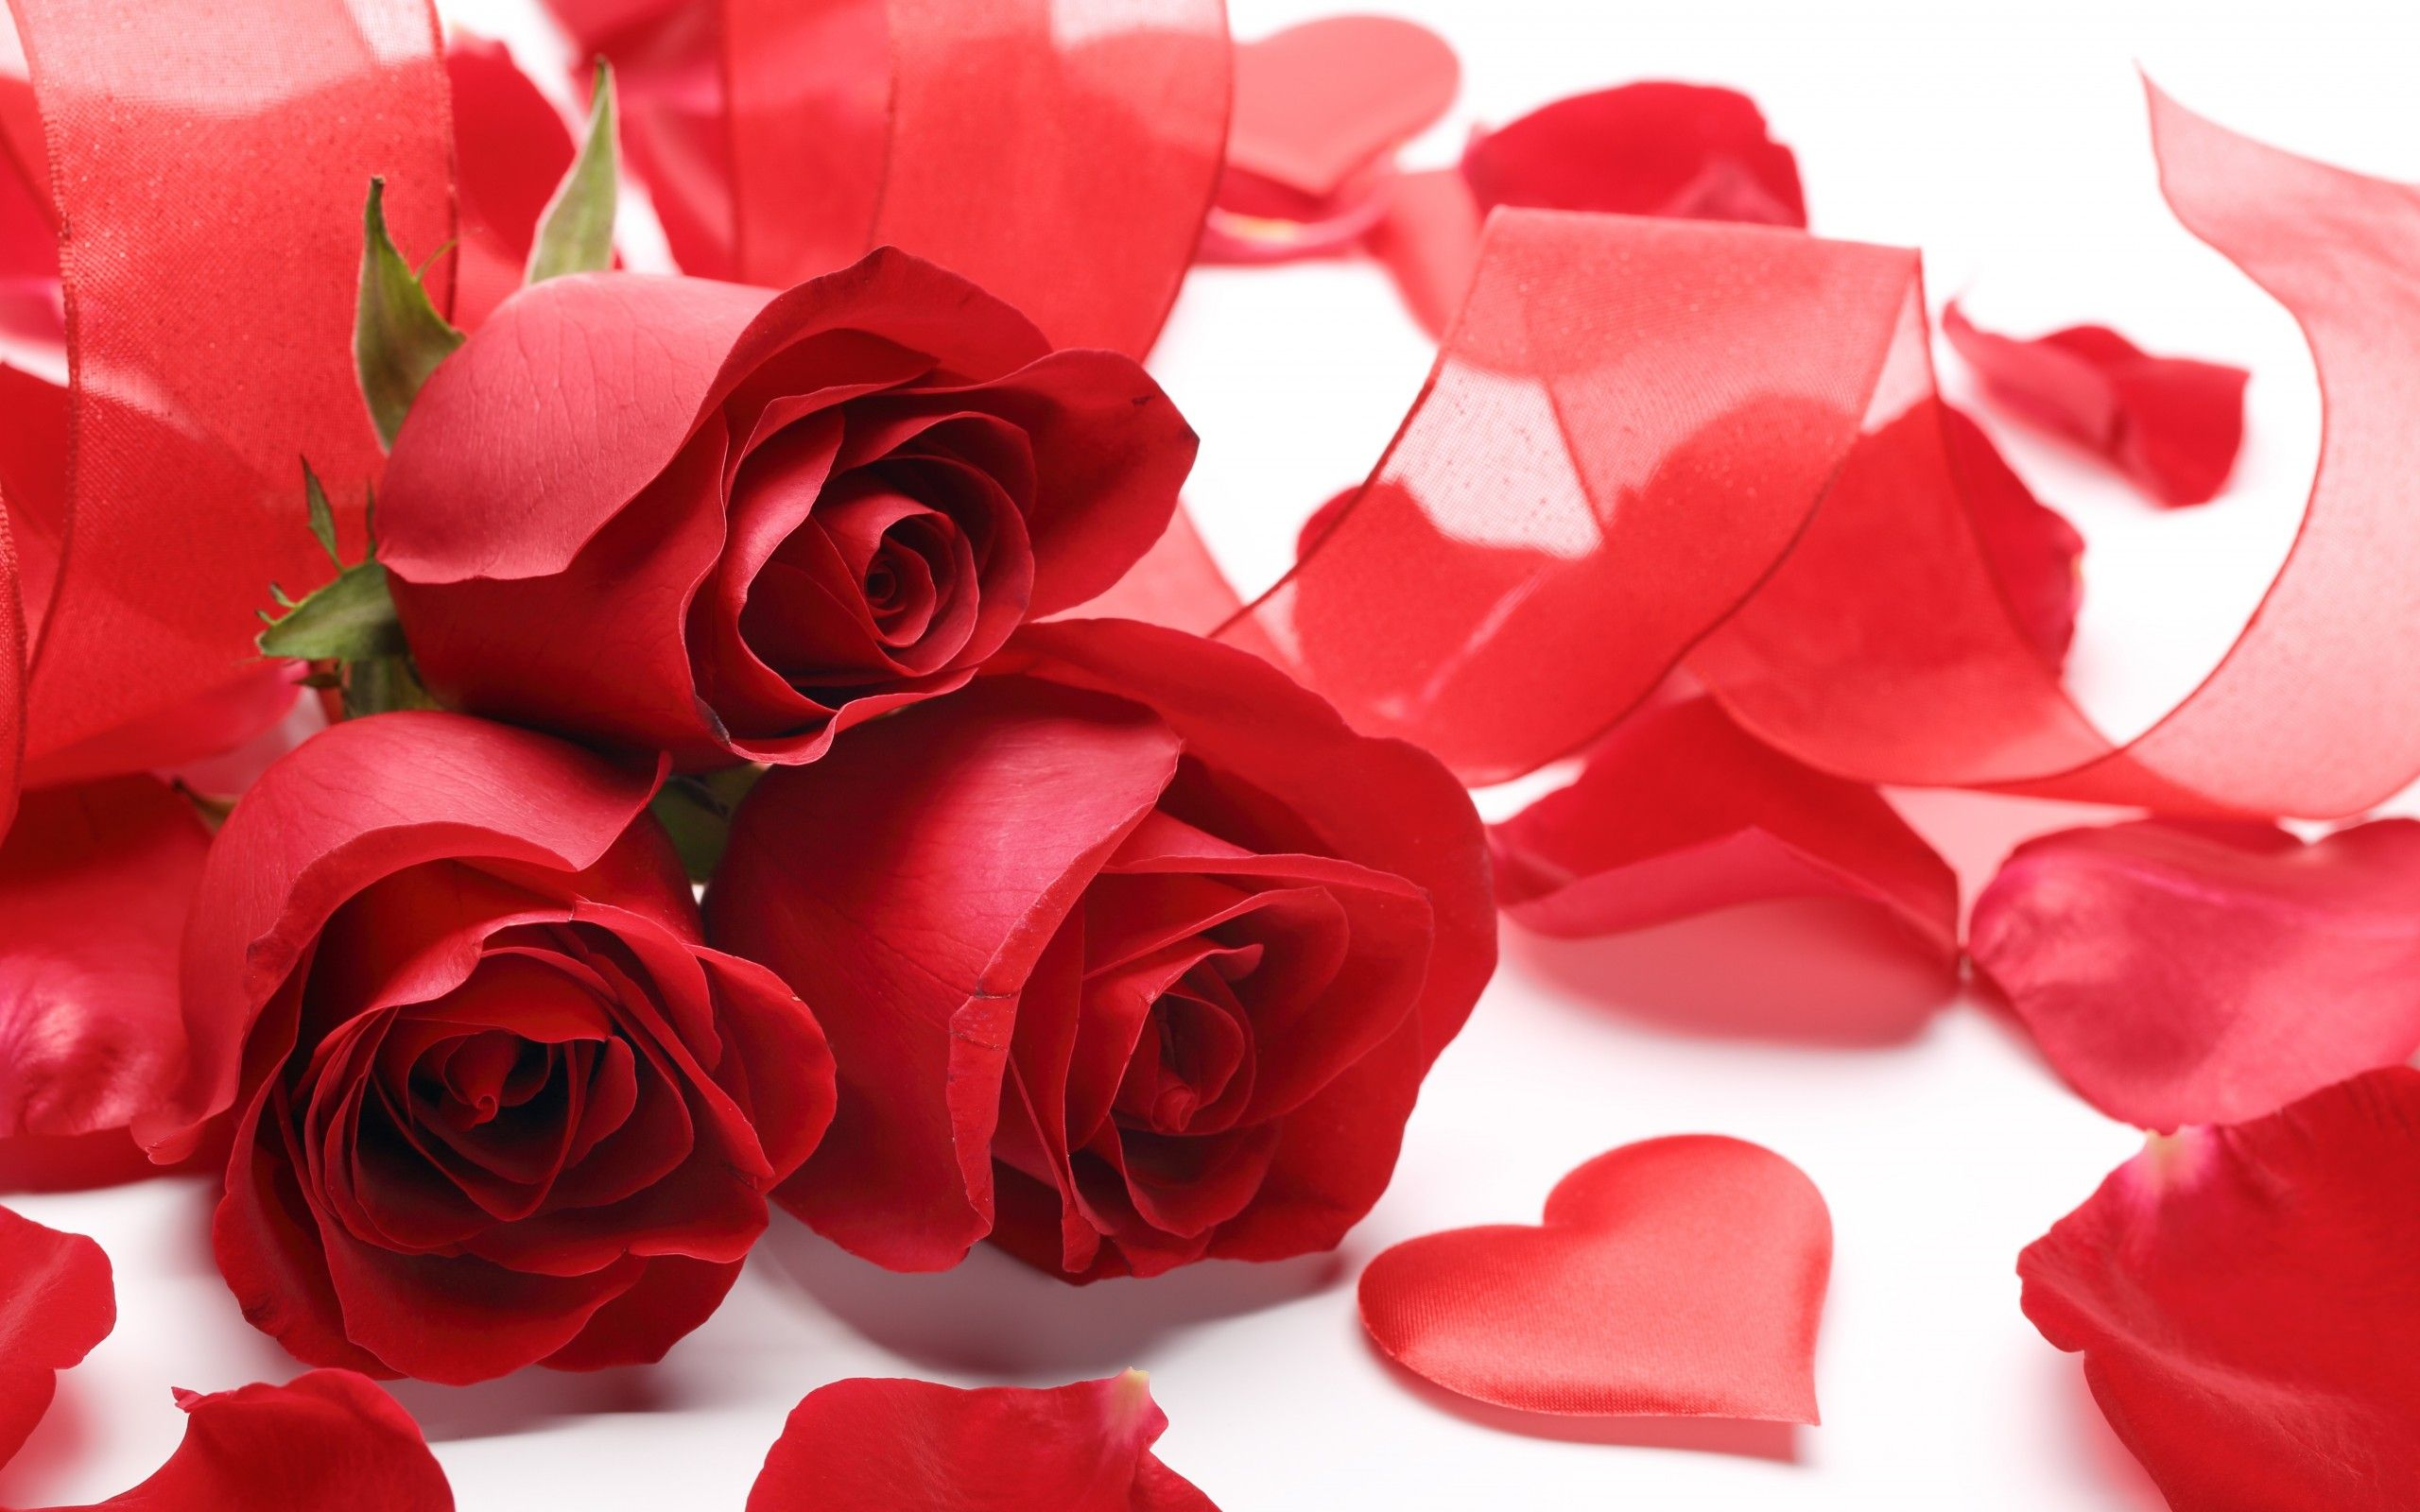 23 valentines day gifts that arent dumb rose wallpaper and wallpaper happy valentines day 2015 hd wallpapers backgrounds izmirmasajfo Images